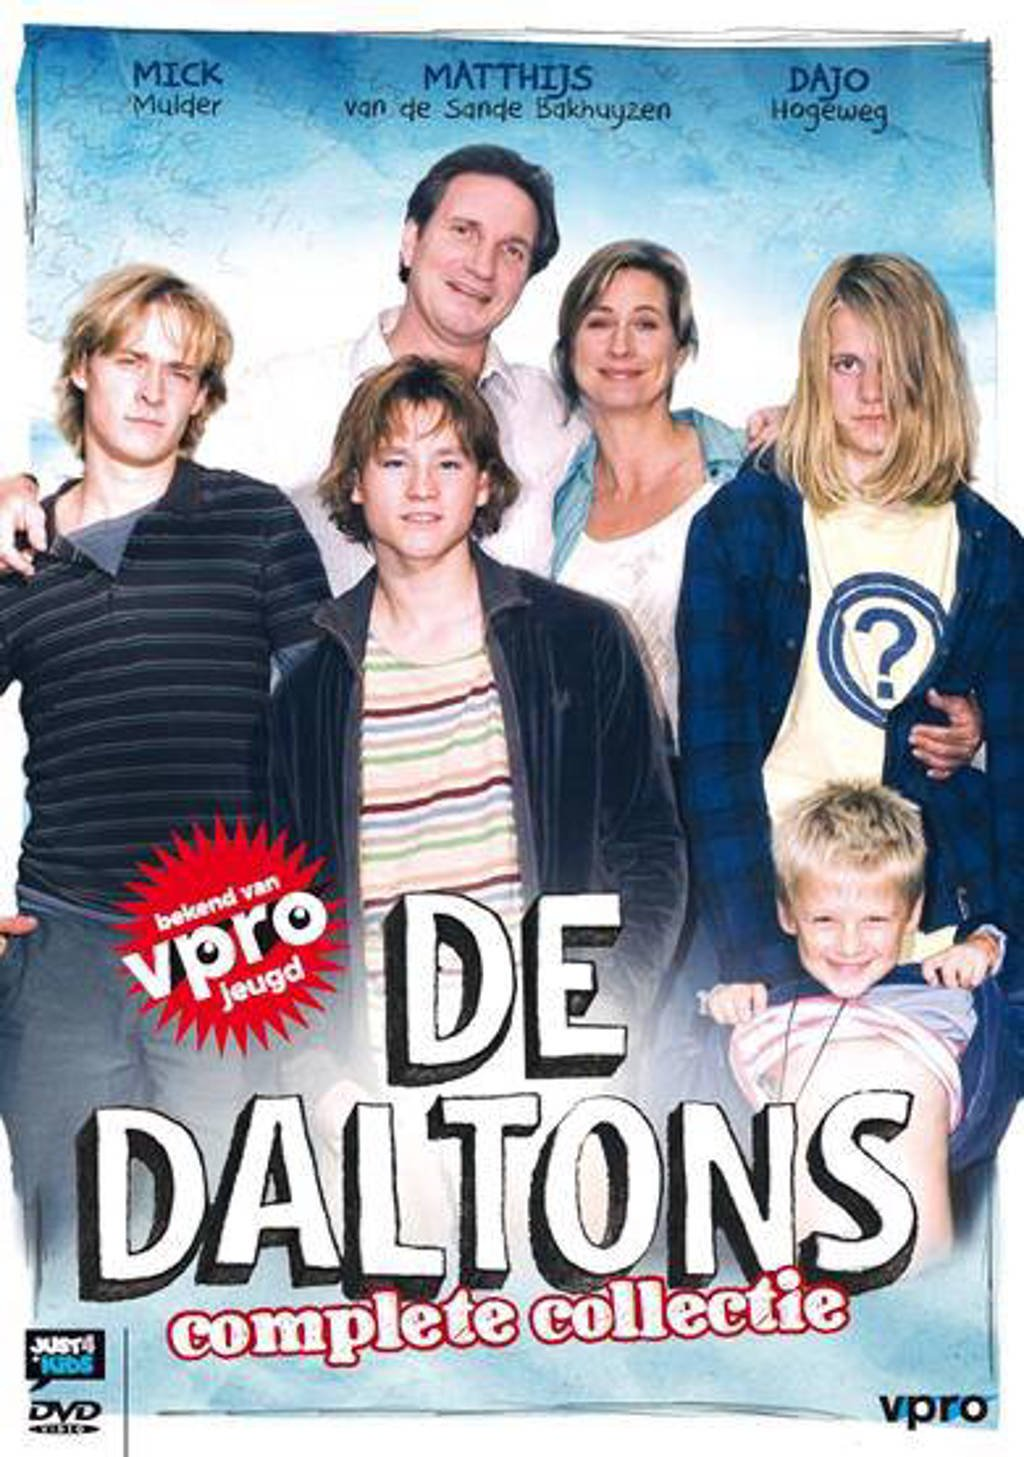 Daltons - Complete collection (DVD)